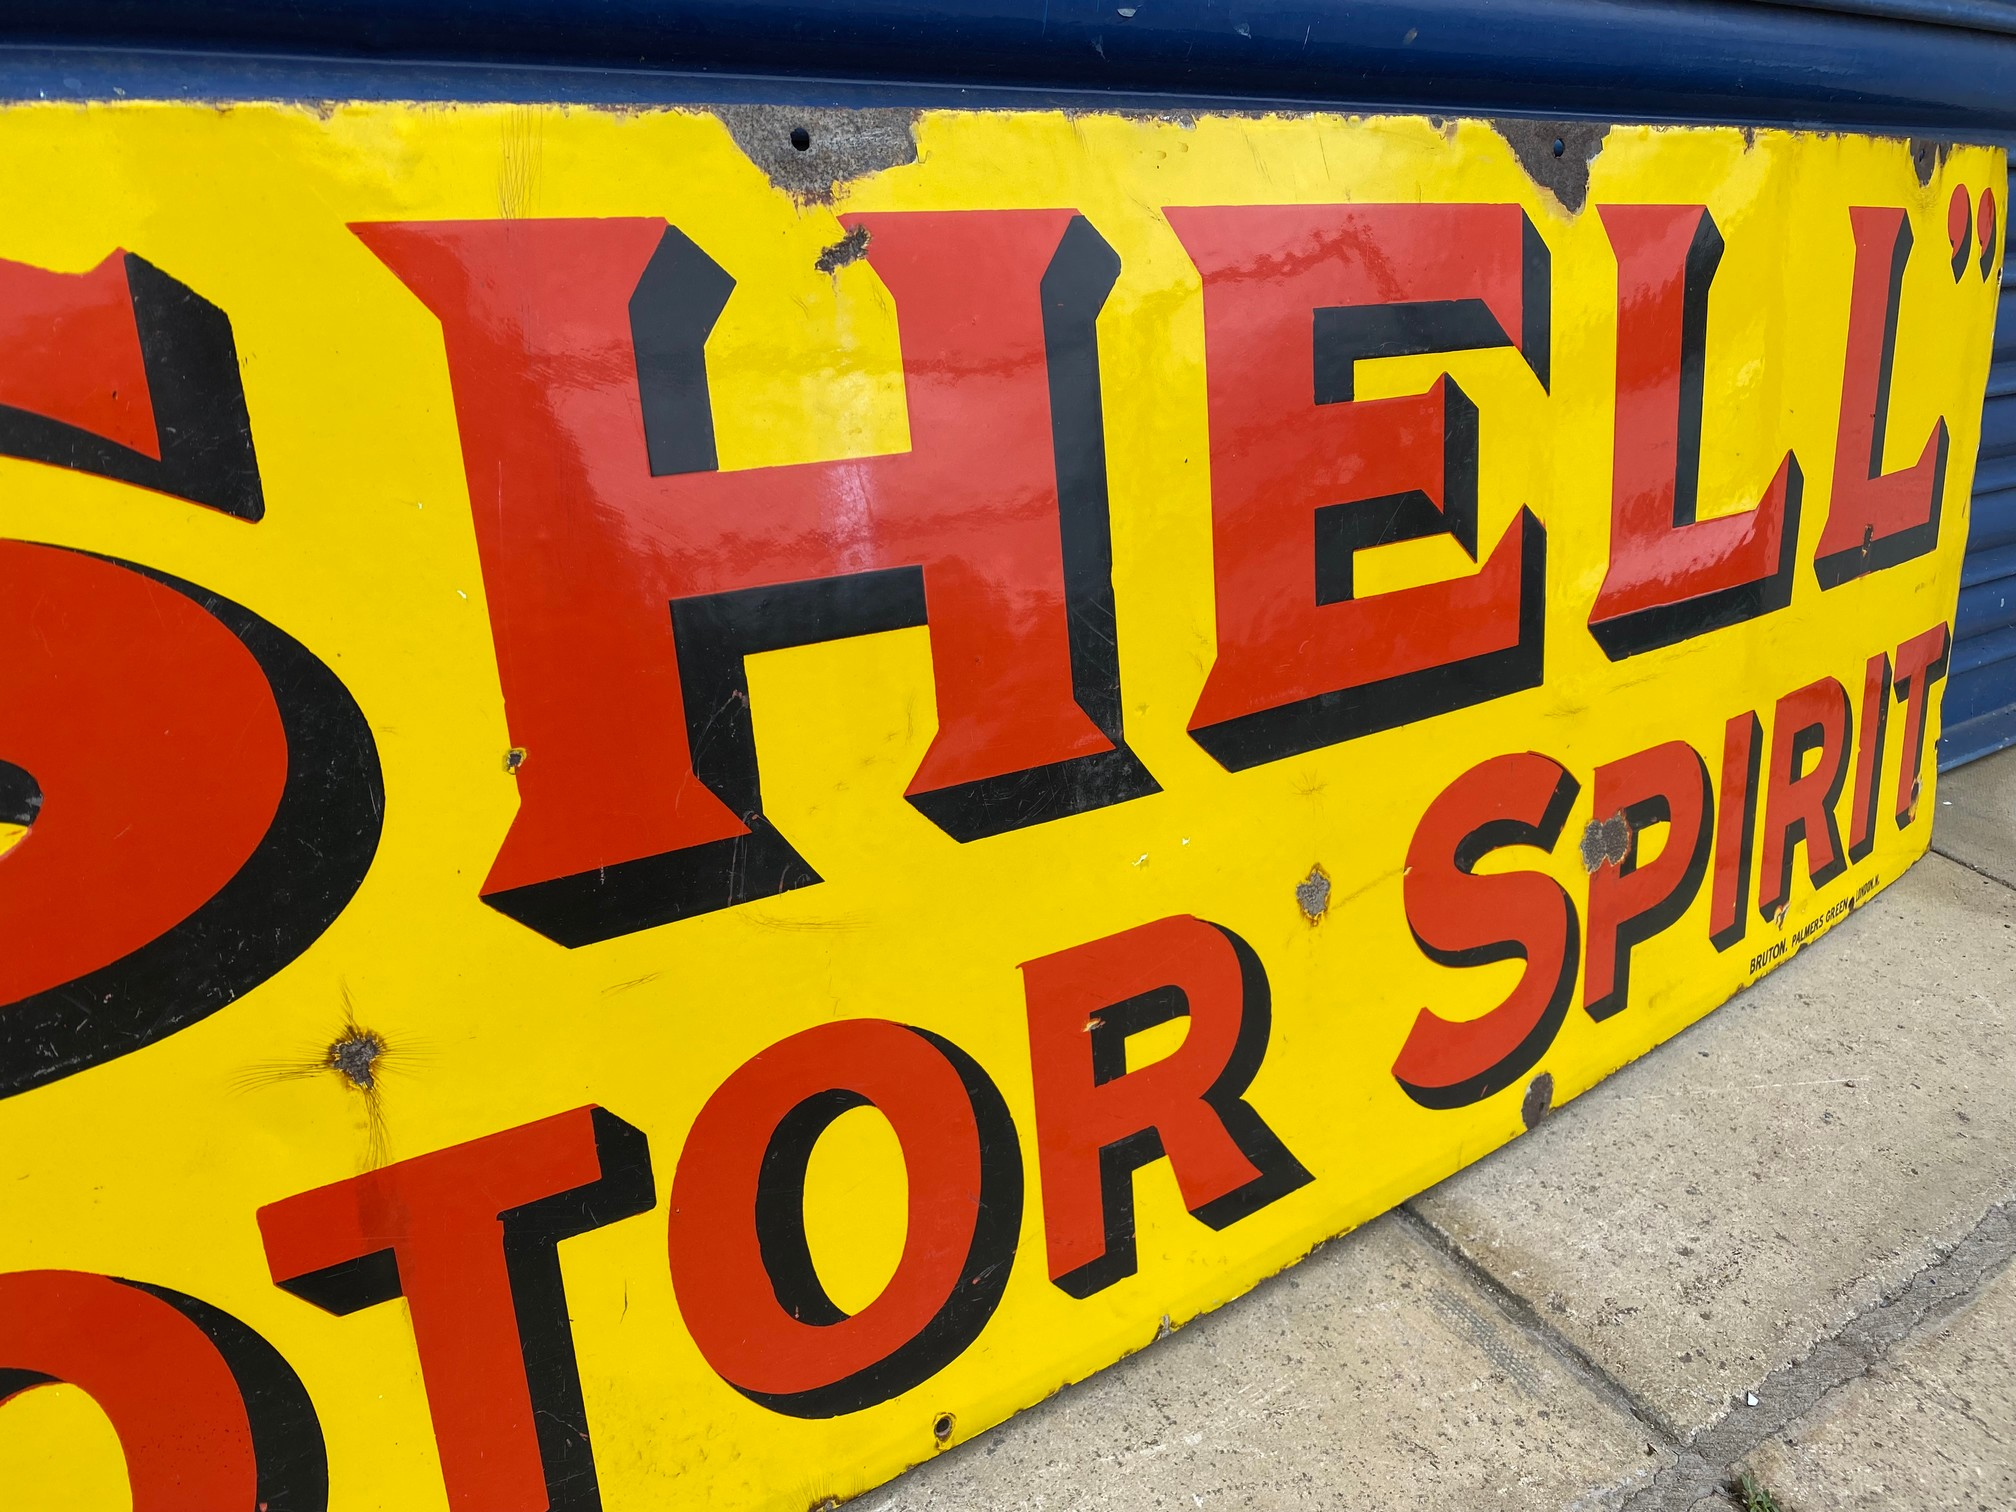 A Shell Motor Spirit rectangular enamel sign by Bruton of Palmers Green, excellent original - Image 3 of 5